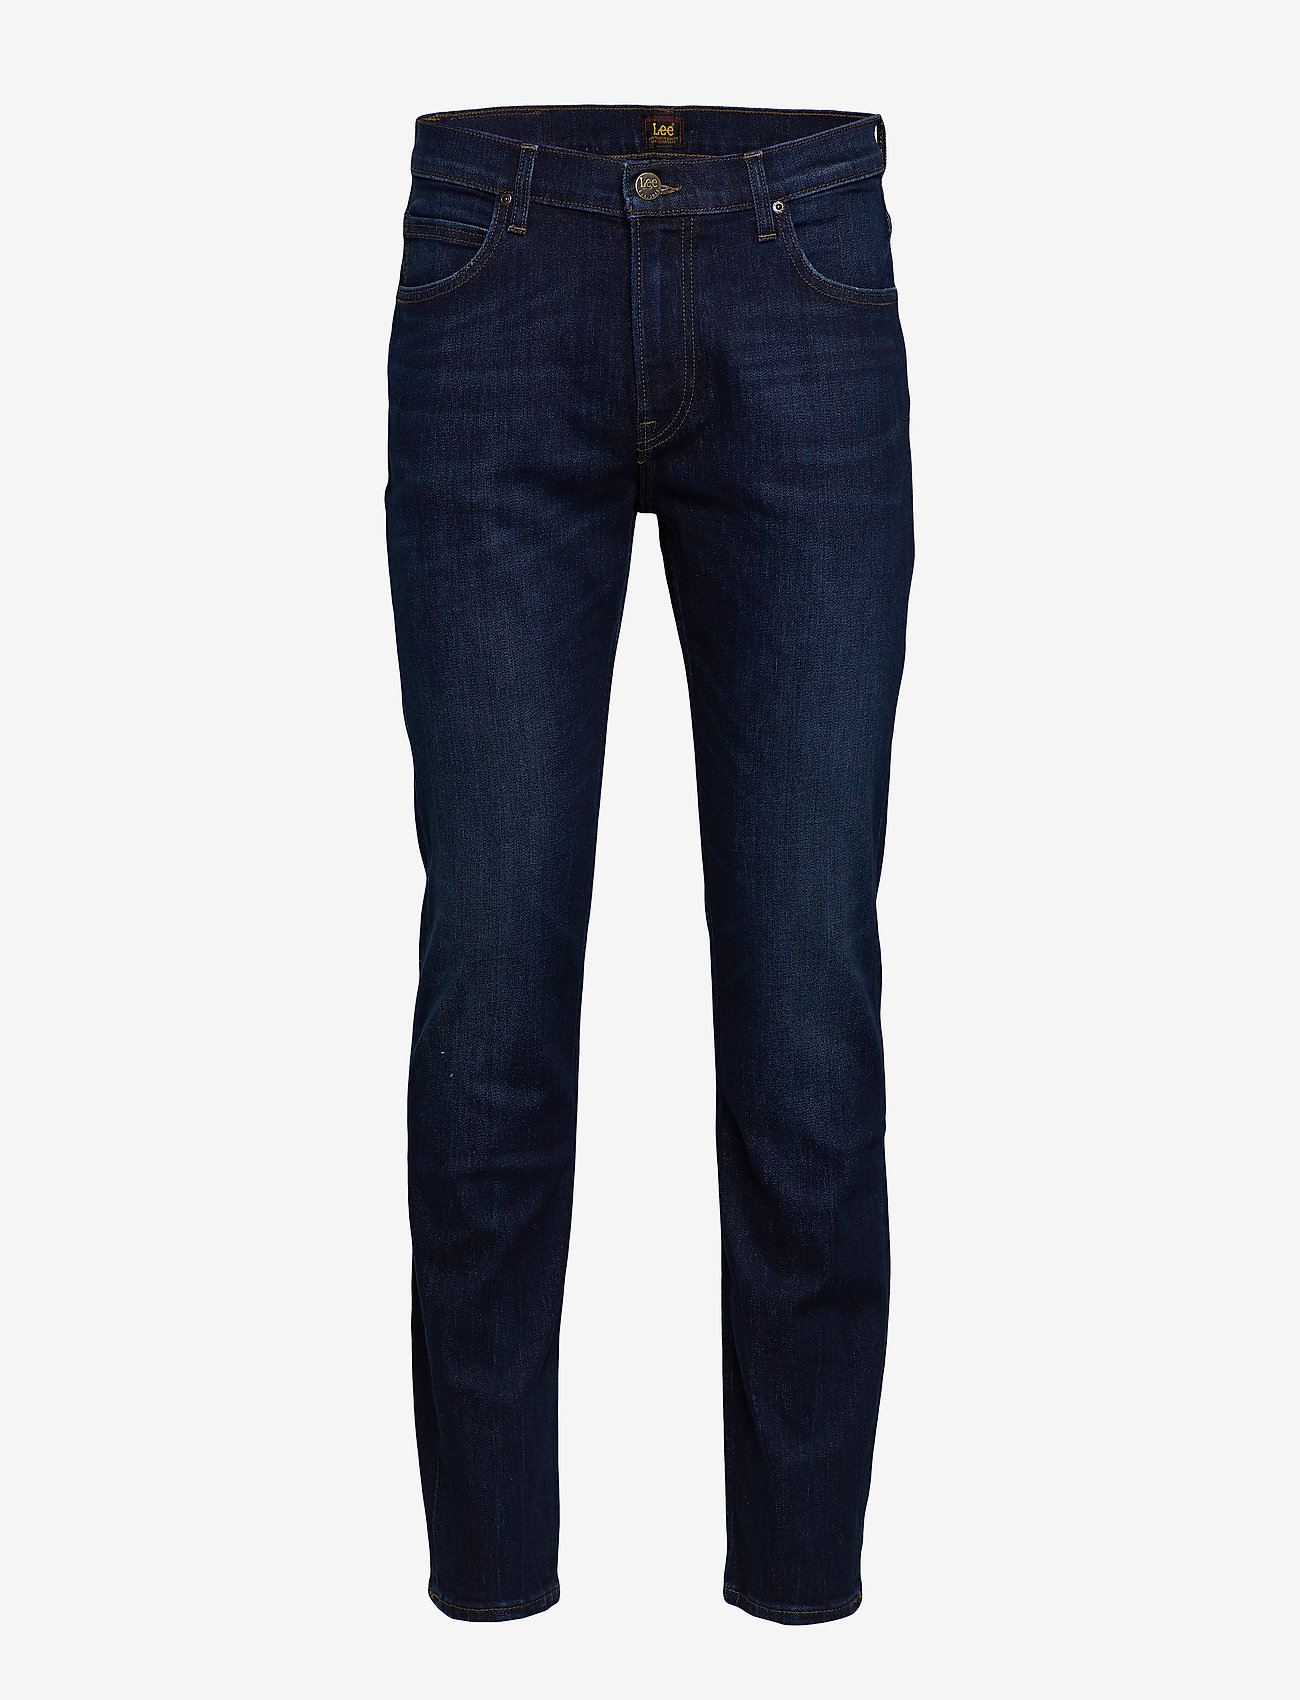 Lee Jeans - RIDER - regular jeans - dark pool - 0